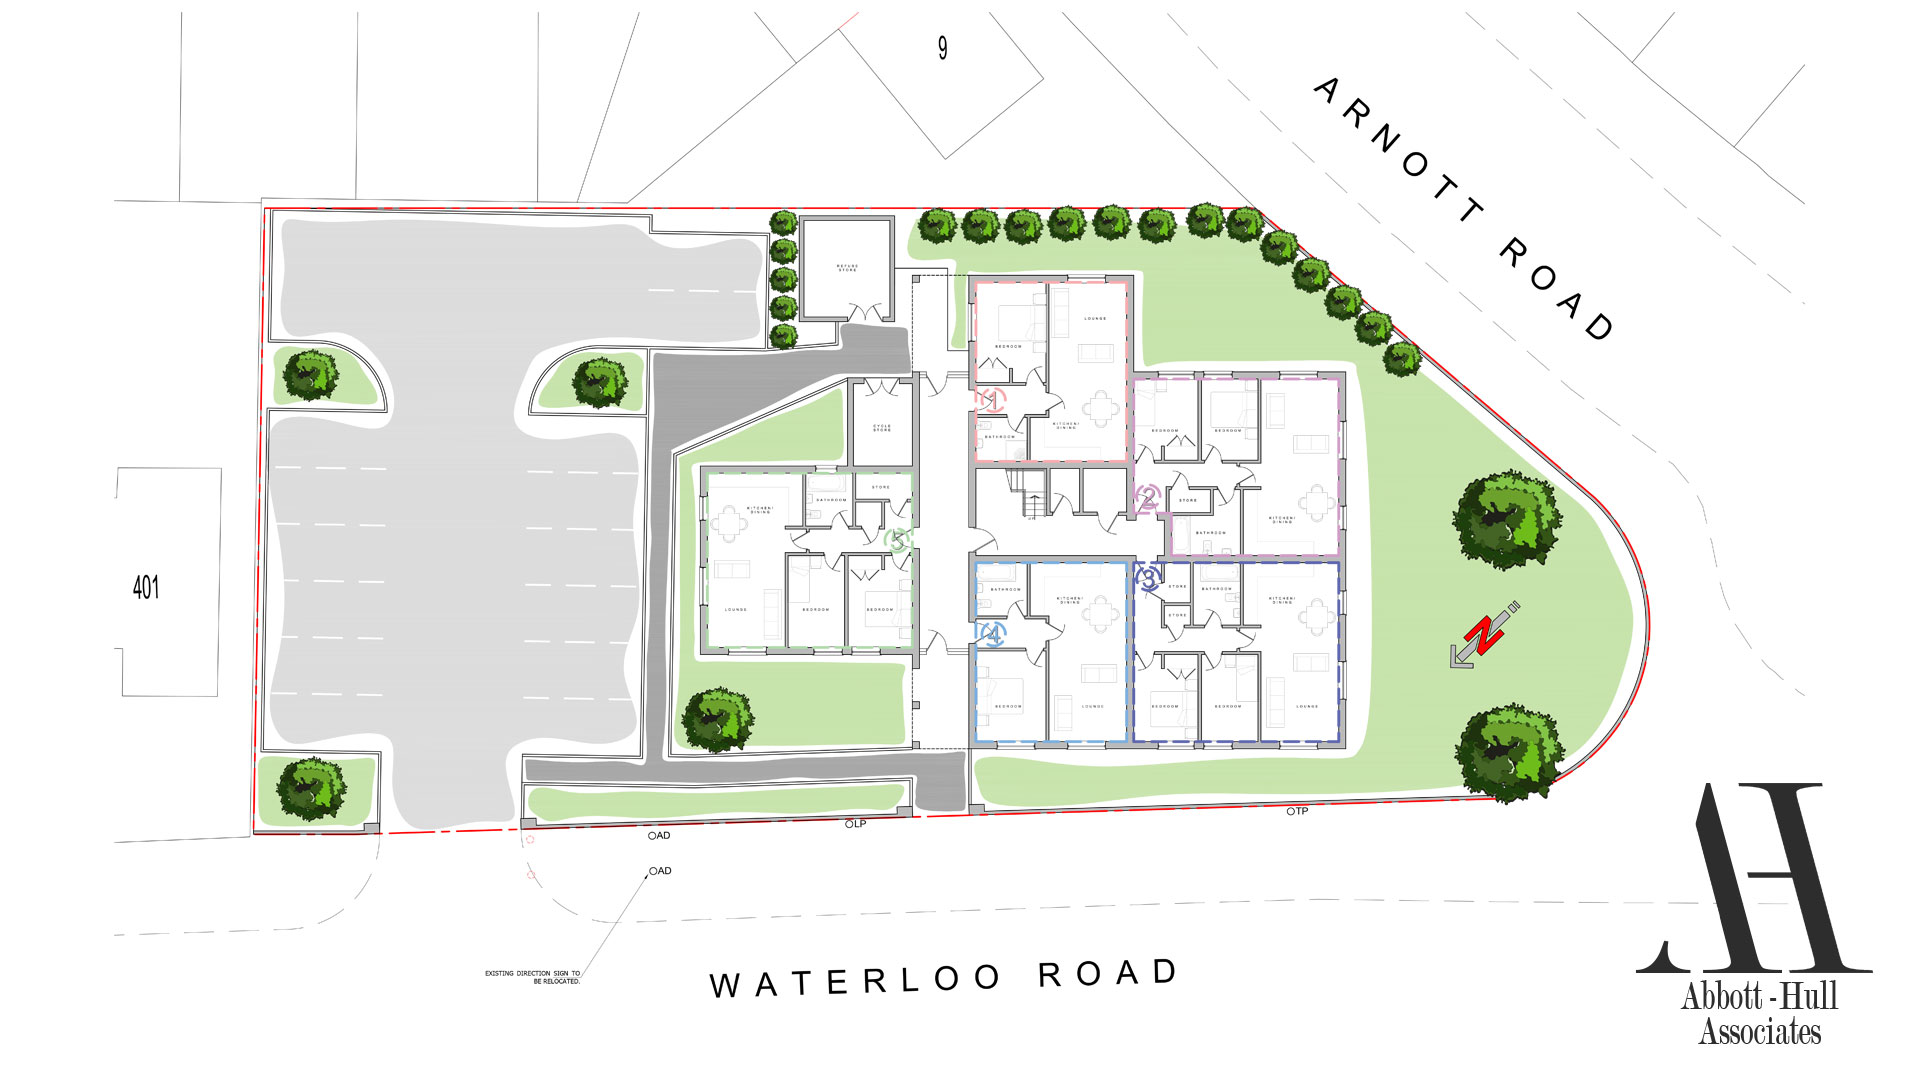 Waterloo Road, Blackpool, New Apartment Block - Proposed Site Plans